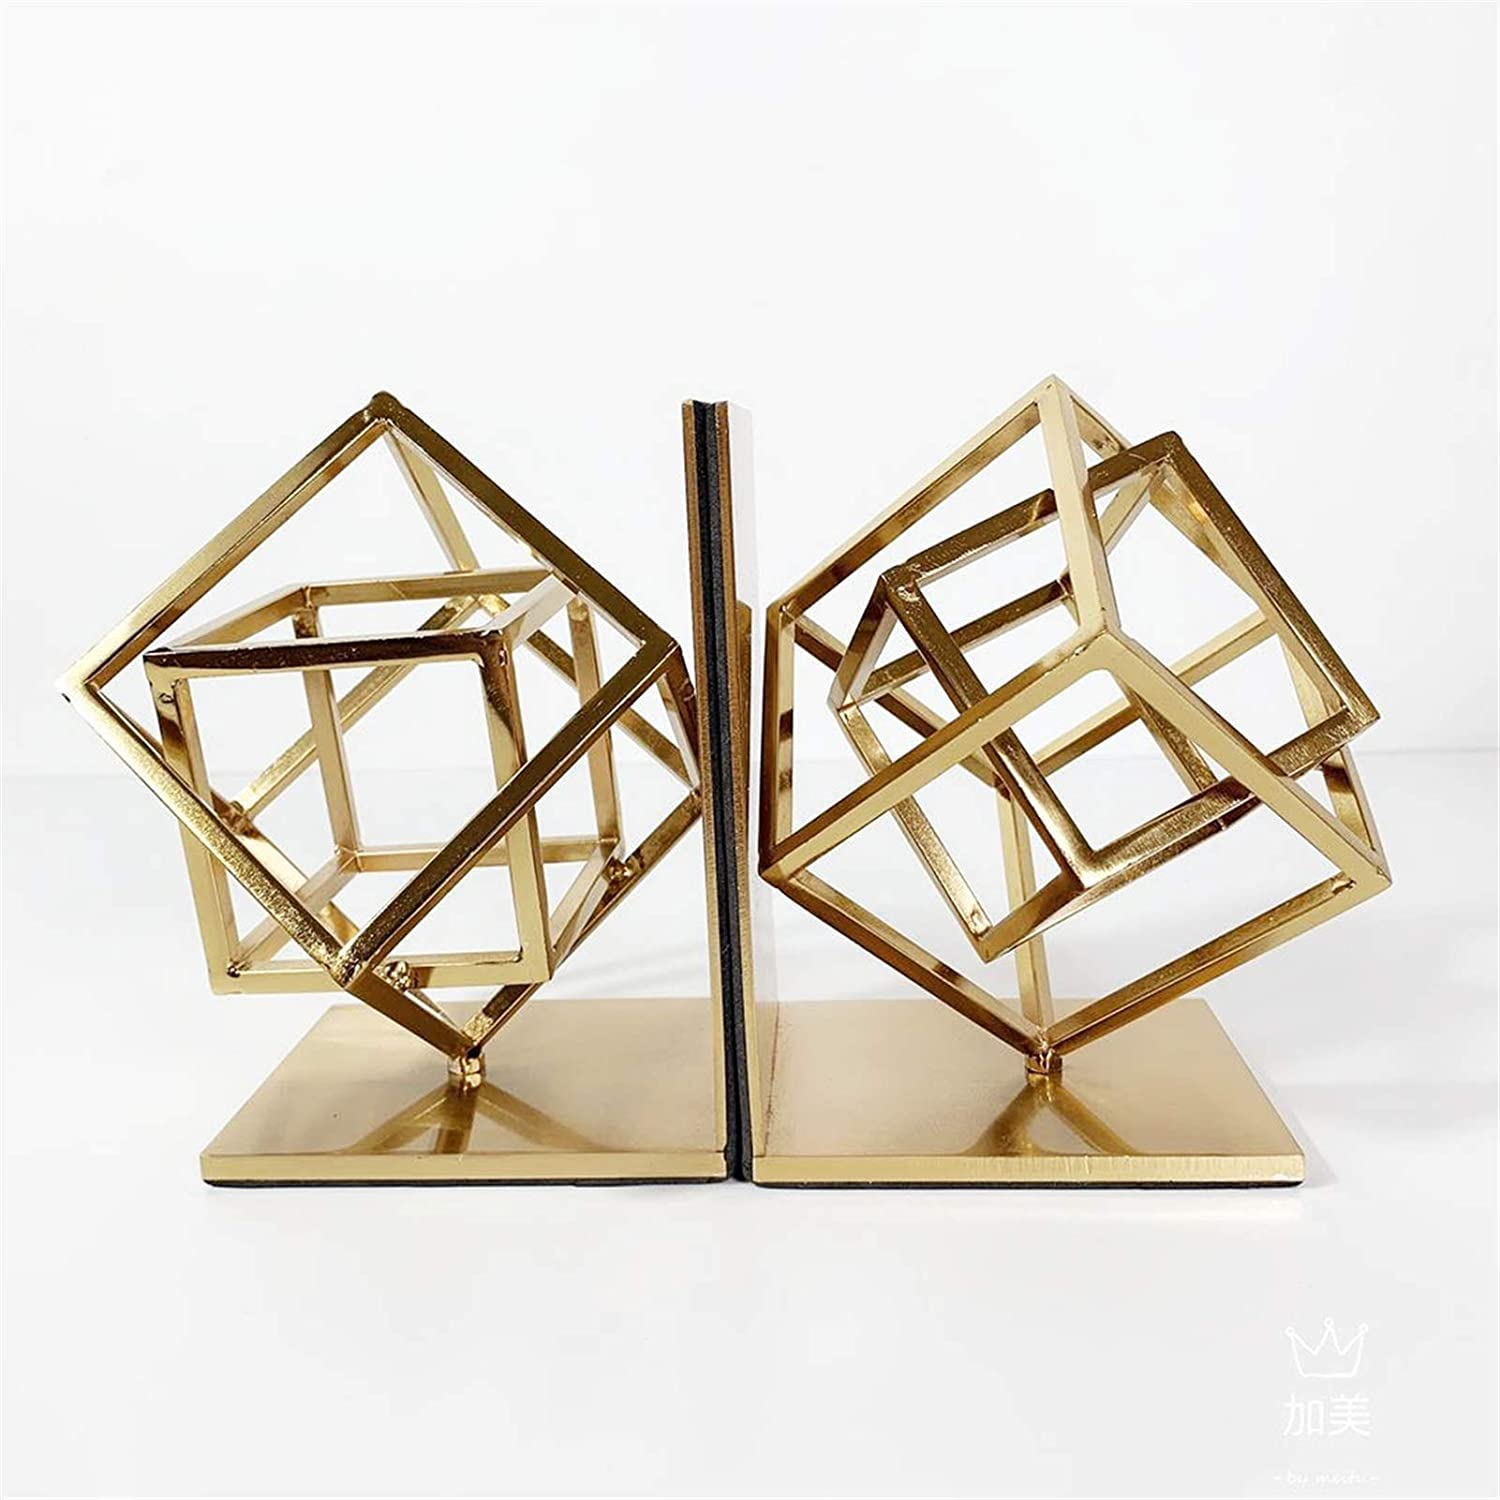 ZLQBHJ Hollow Cube Decor Decorative Shipping included Elegant Book Max 61% OFF Vintage Cr Ends